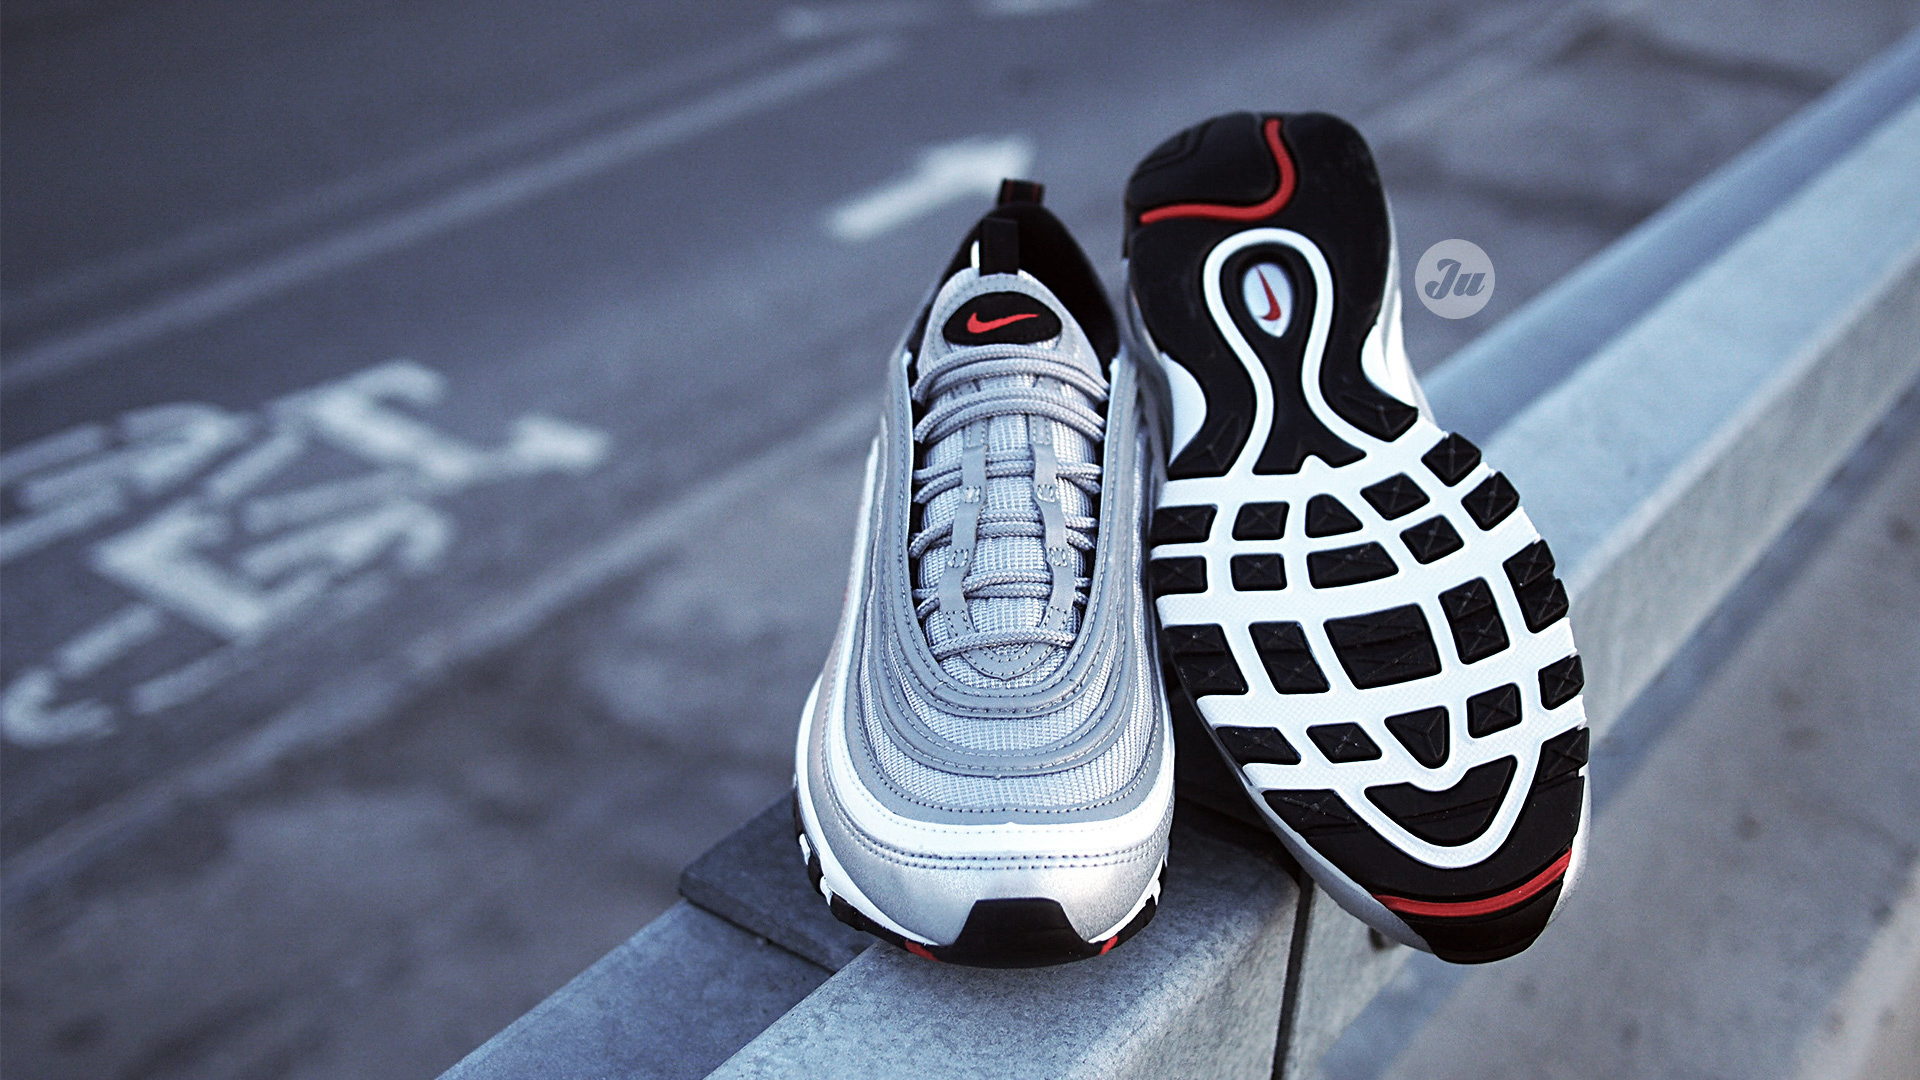 Cheap Nike Air Max '97 Disponibili su Zalando